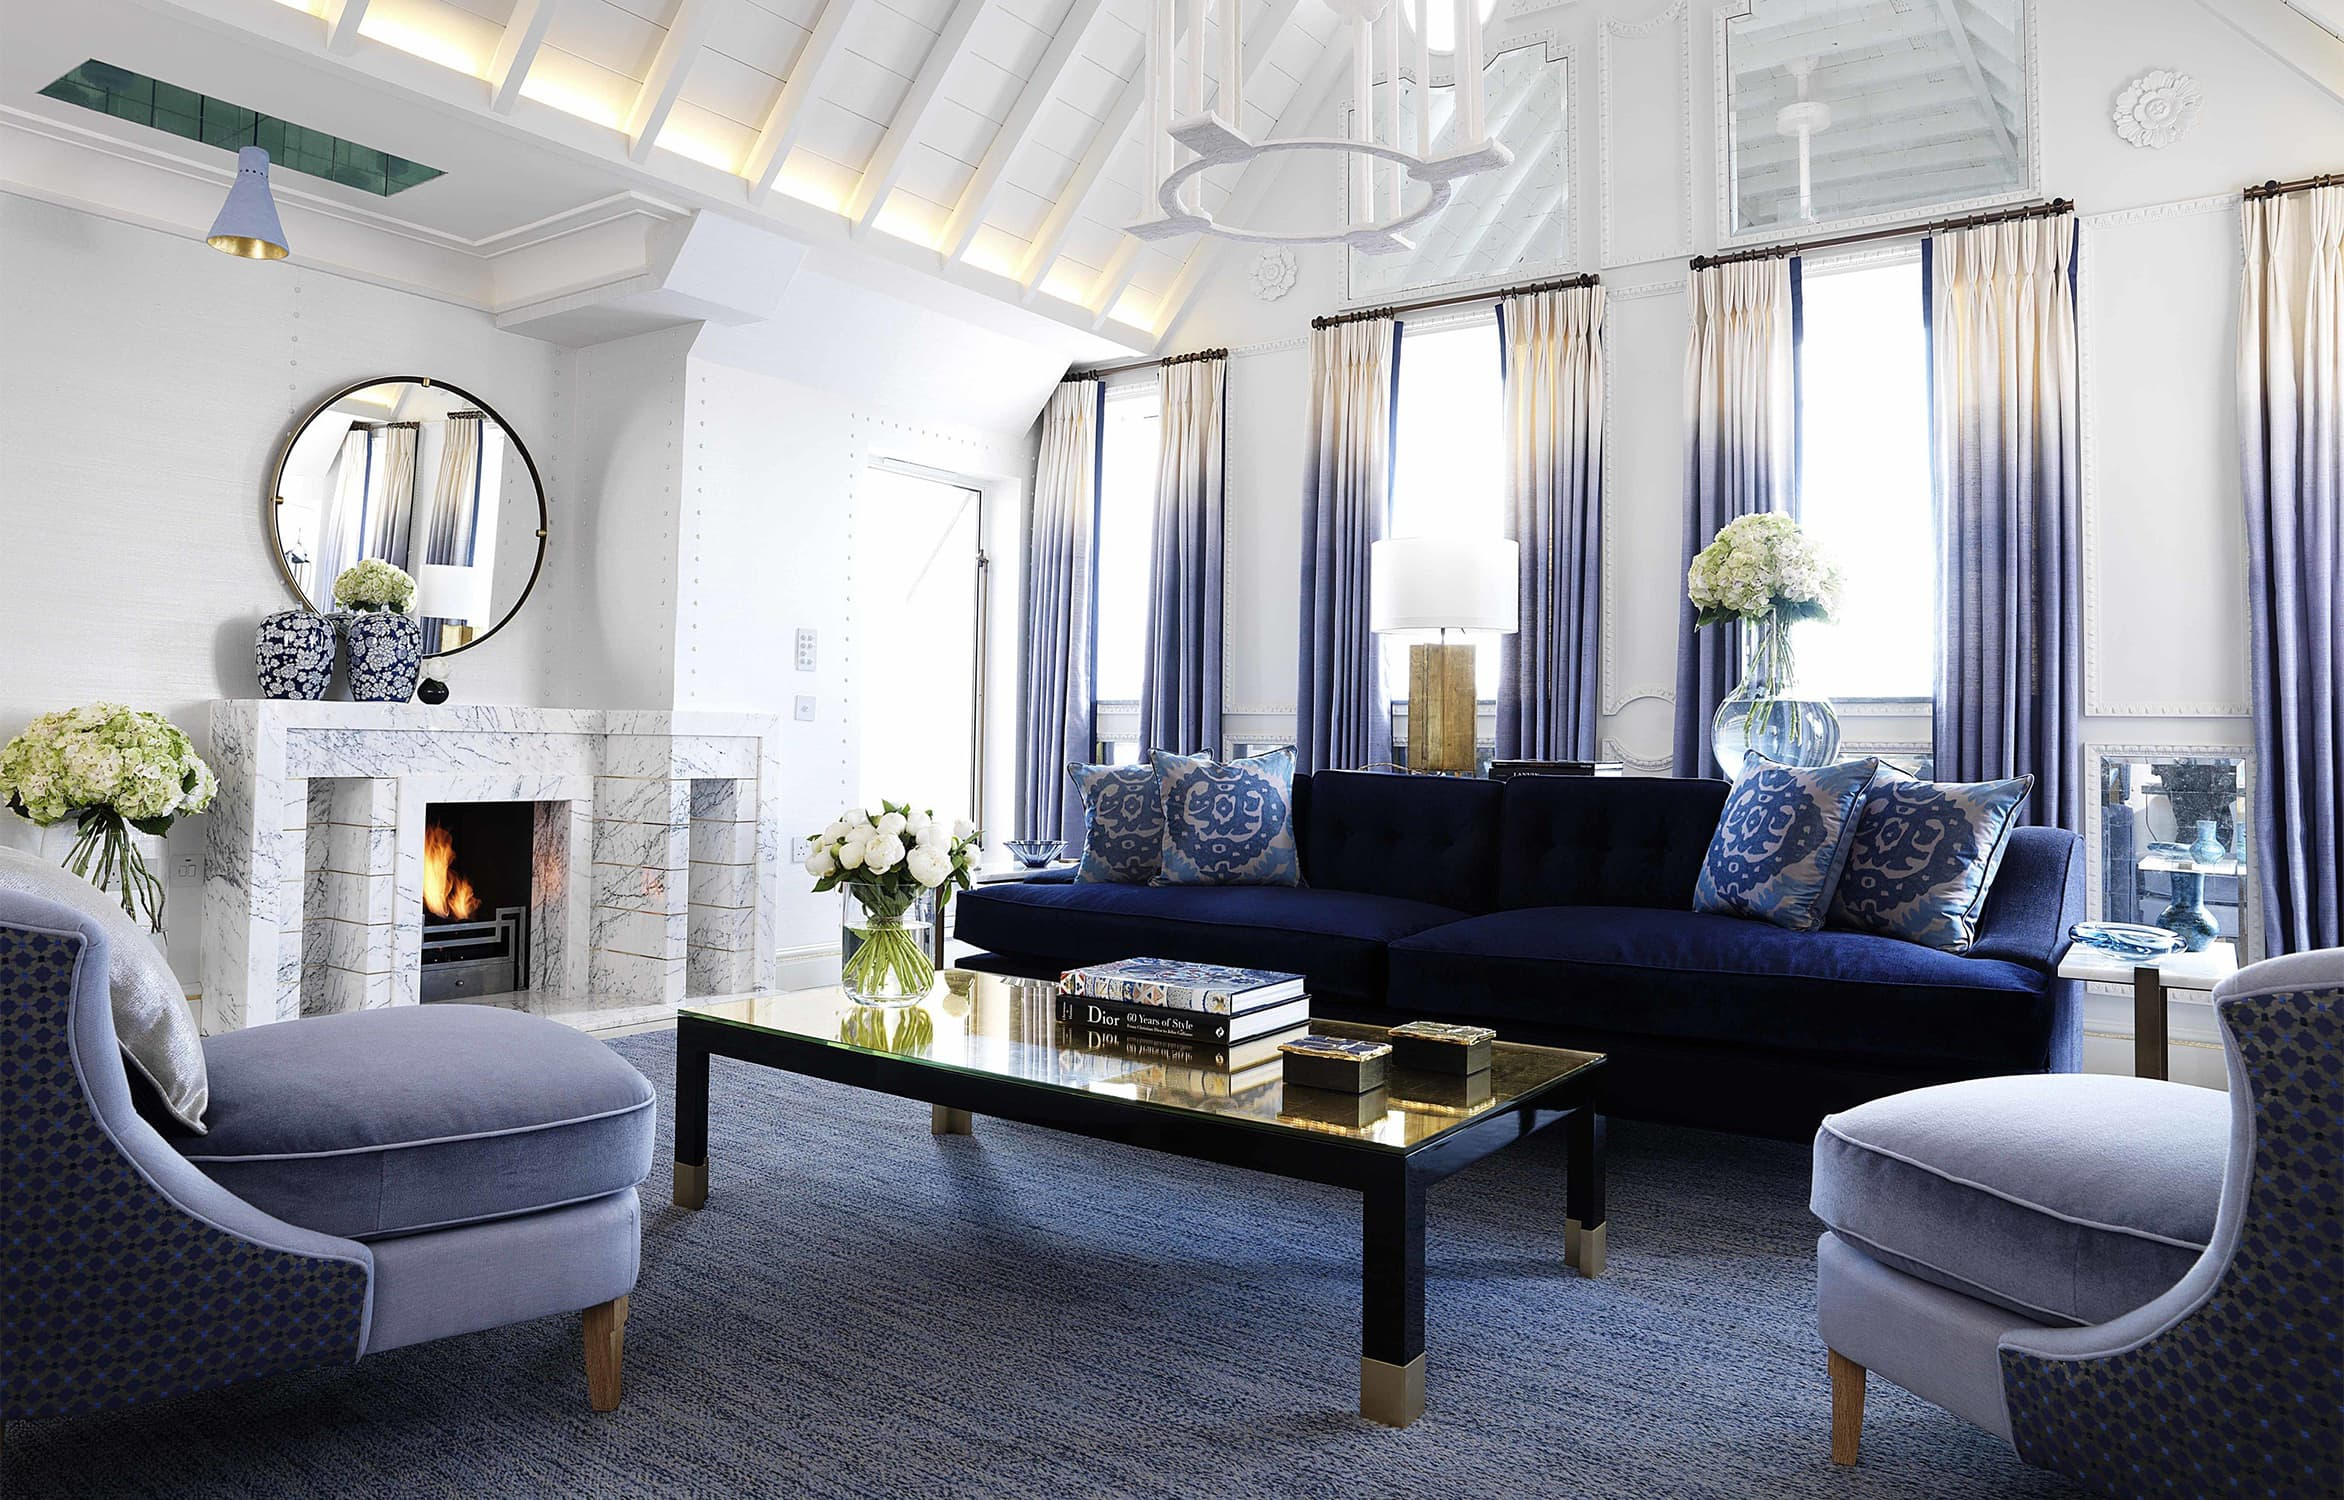 winter hygge living room blue chic with gold accents and fresh flowers